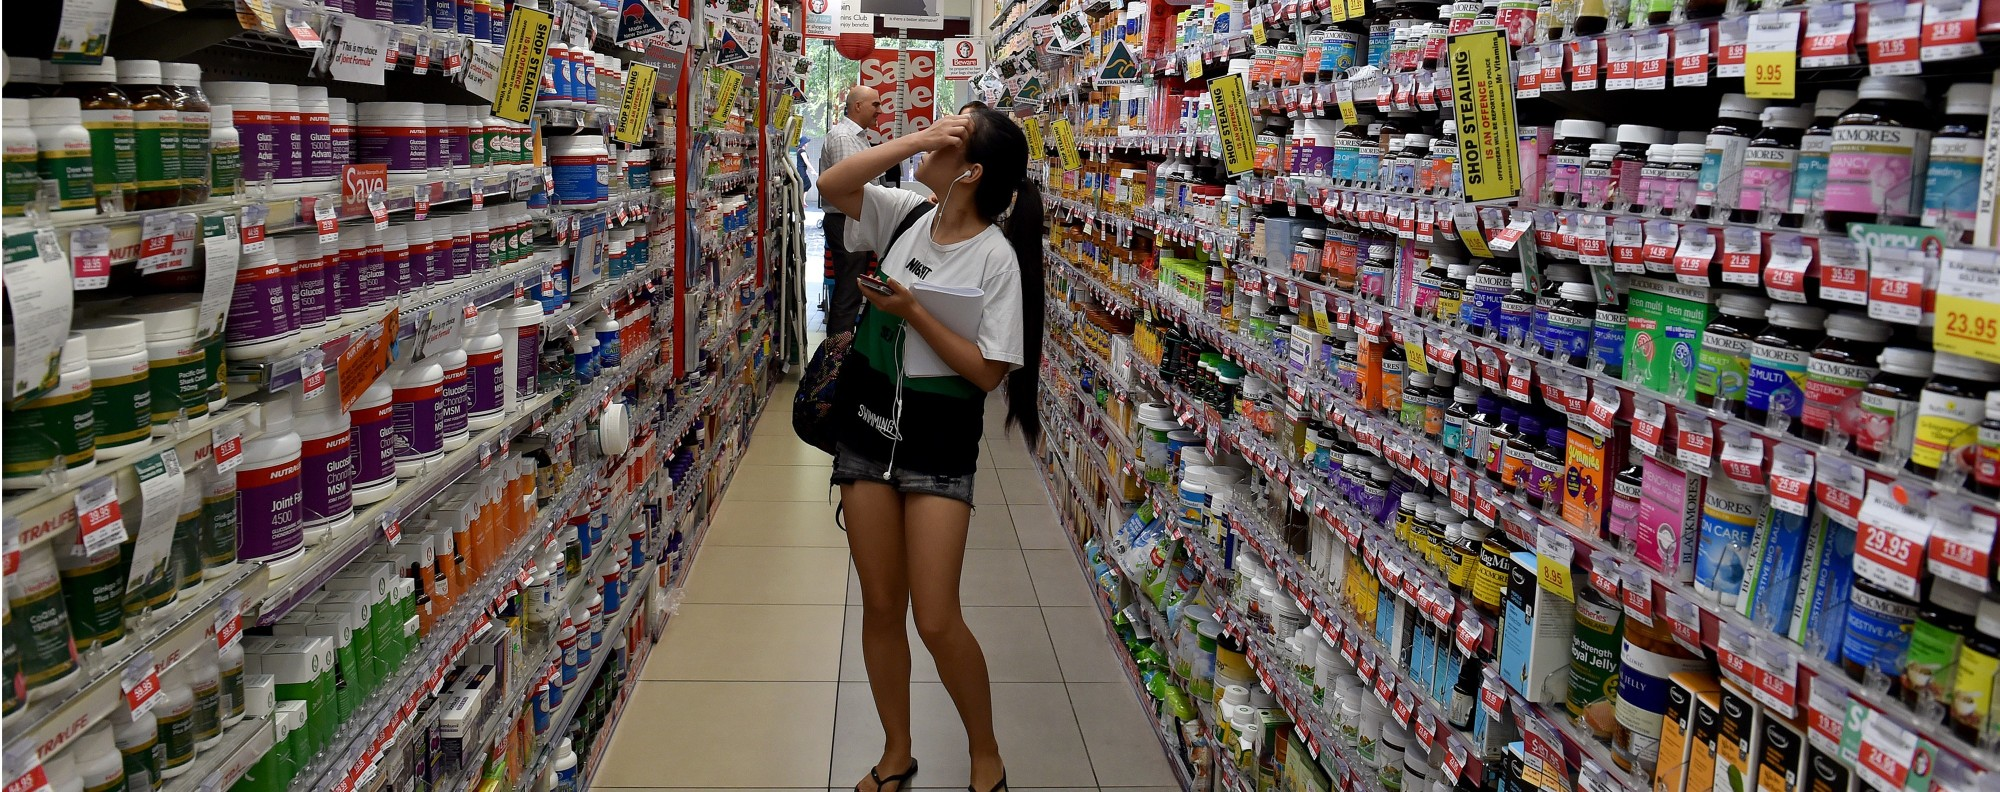 Health products are popular with daigou shoppers. Photo: AFP